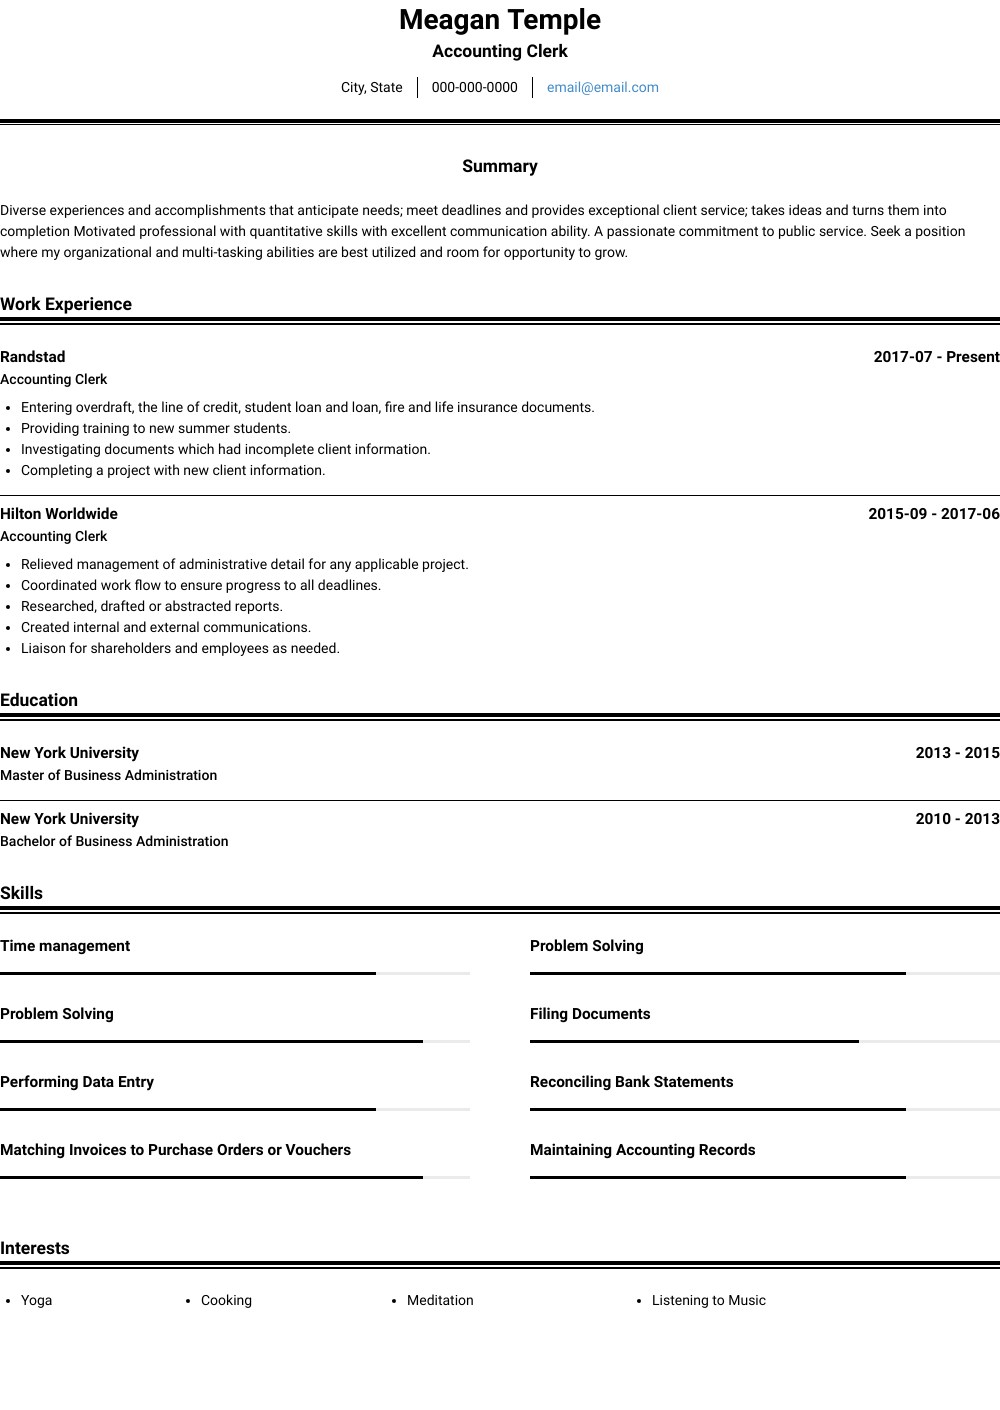 Accounting Clerk Resume Samples And Templates Visualcv